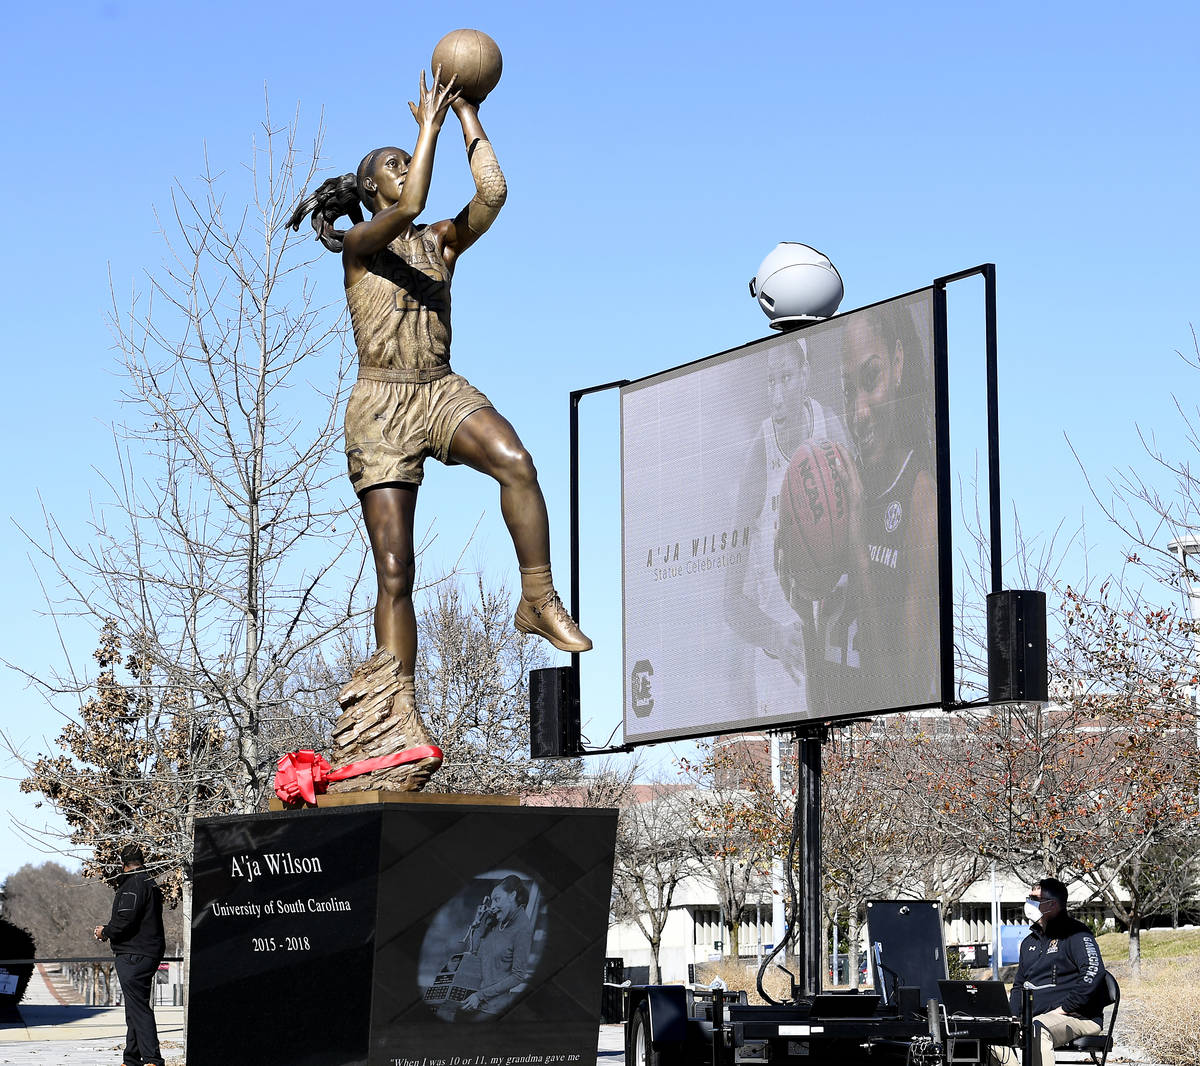 Aces star A'ja Wilson had a bronze sculpture of her unveiled in a ceremony Monday at South Ca ...